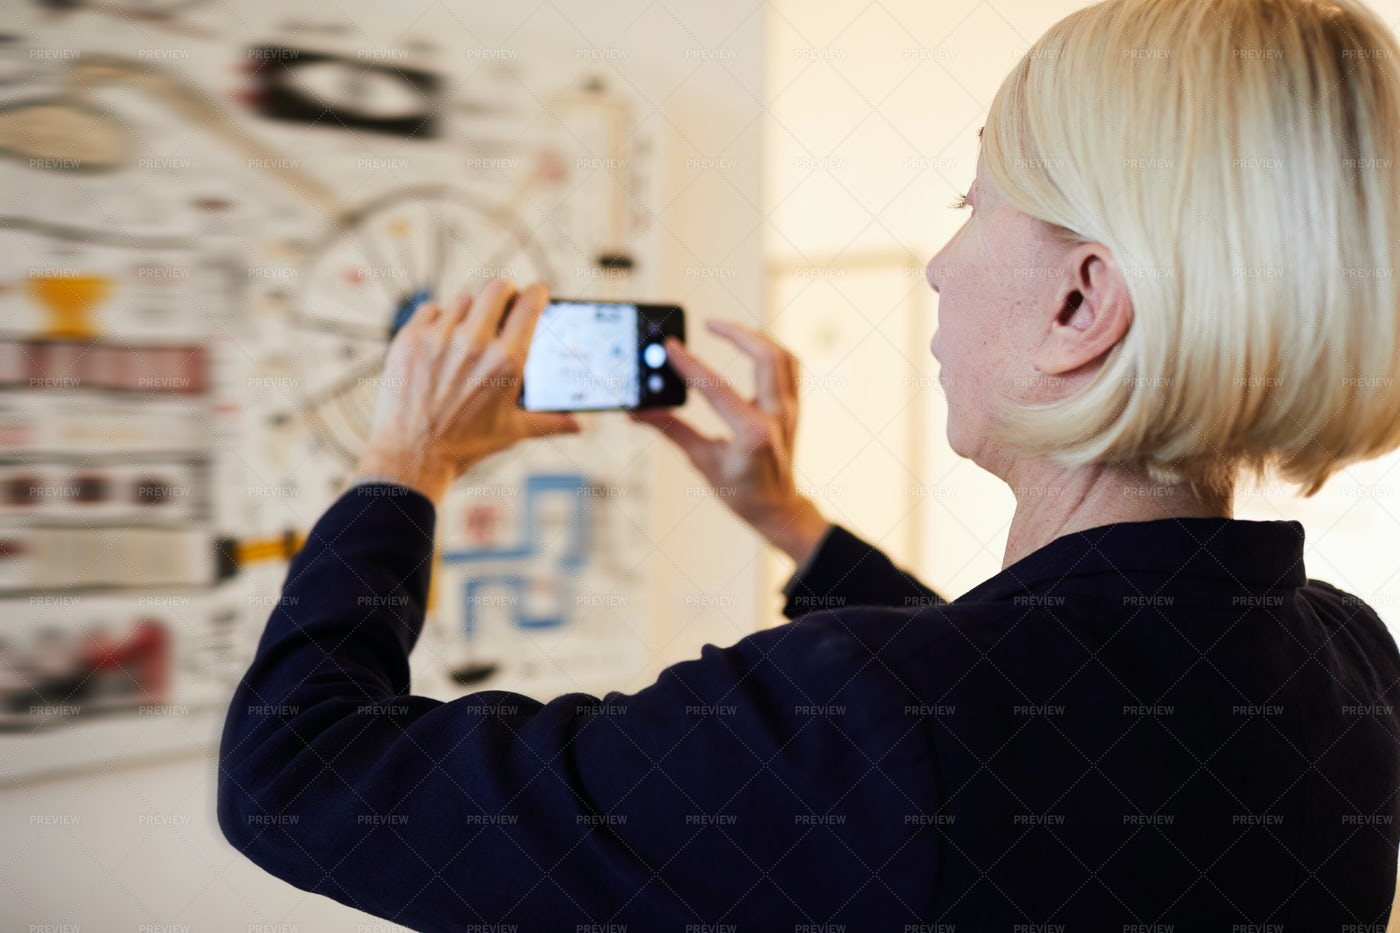 Gallery Visitor Taking Photo Of...: Stock Photos